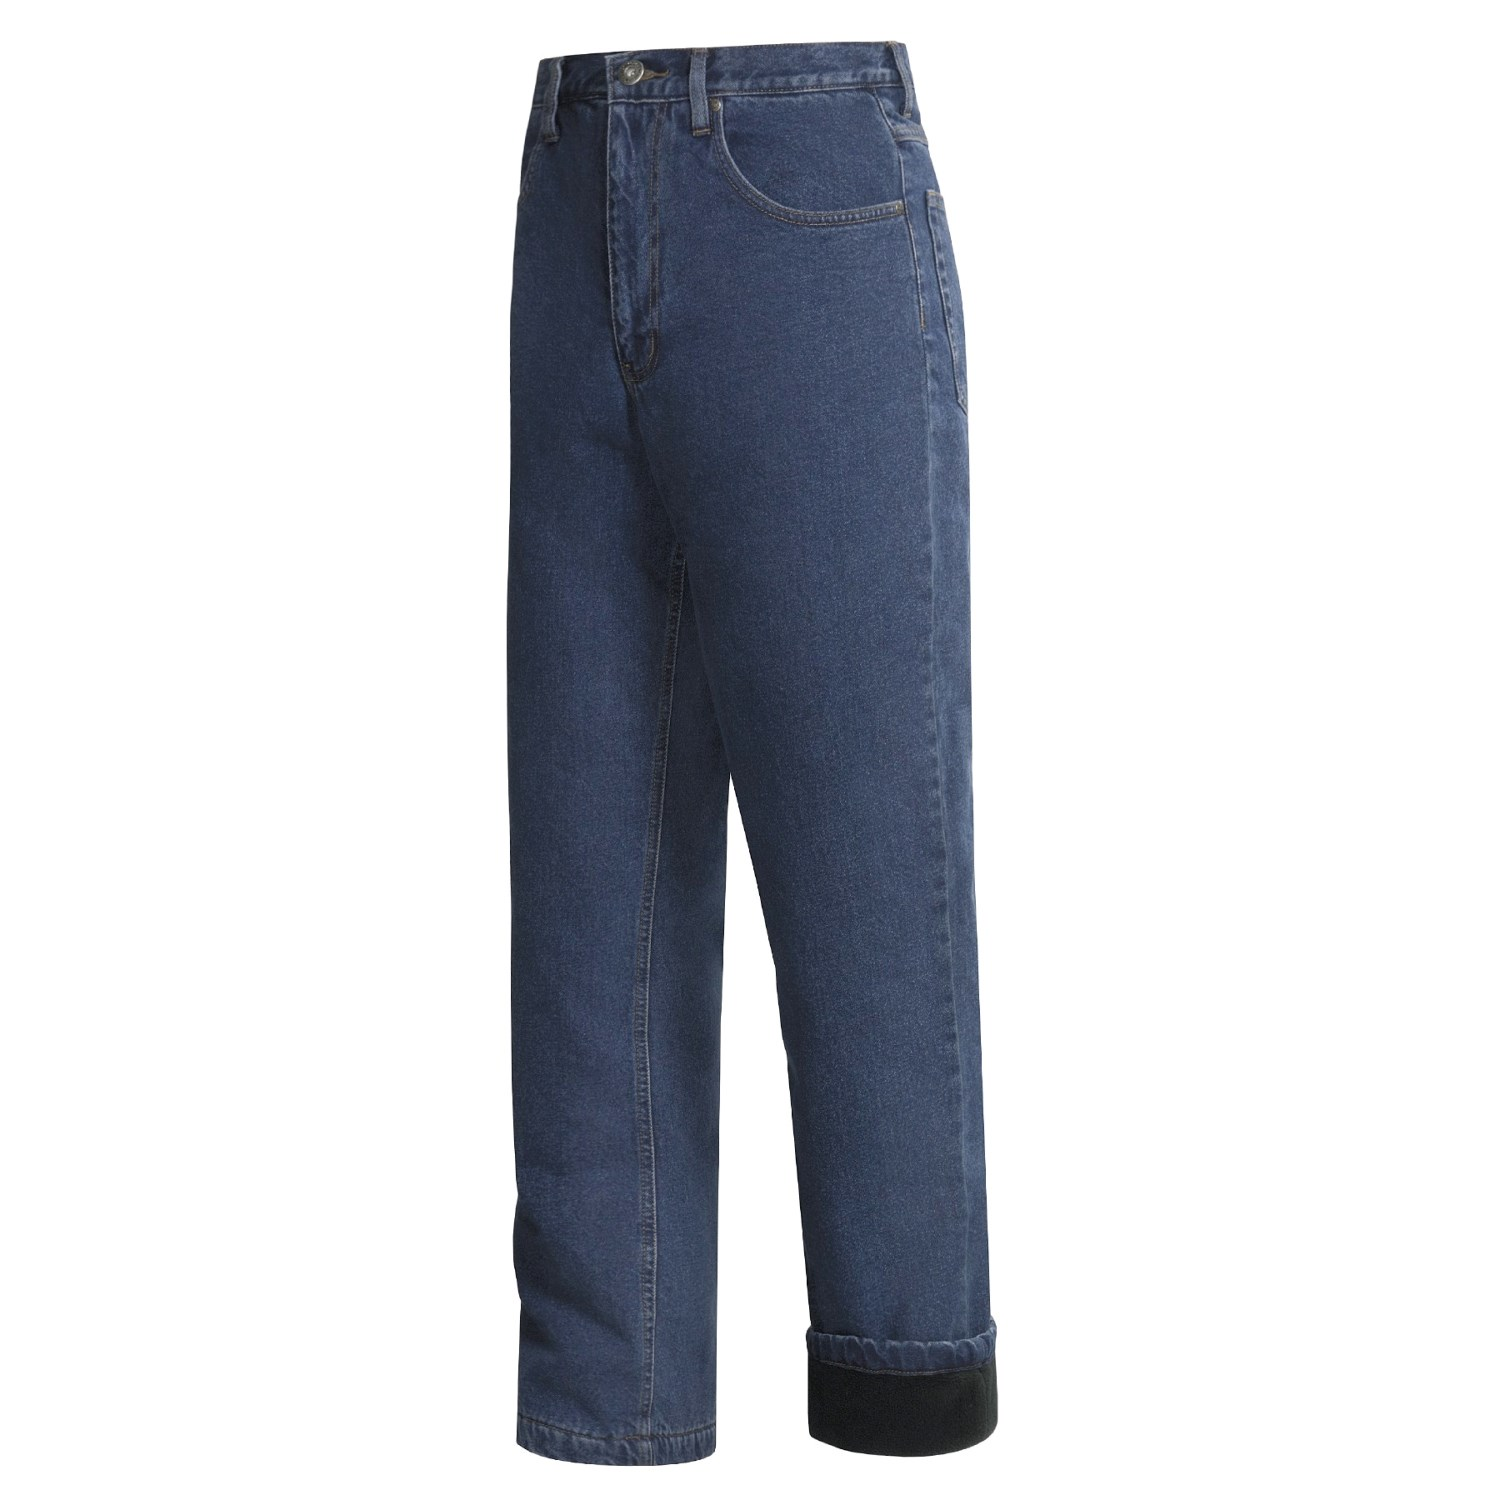 Lined Mens Jeans 80